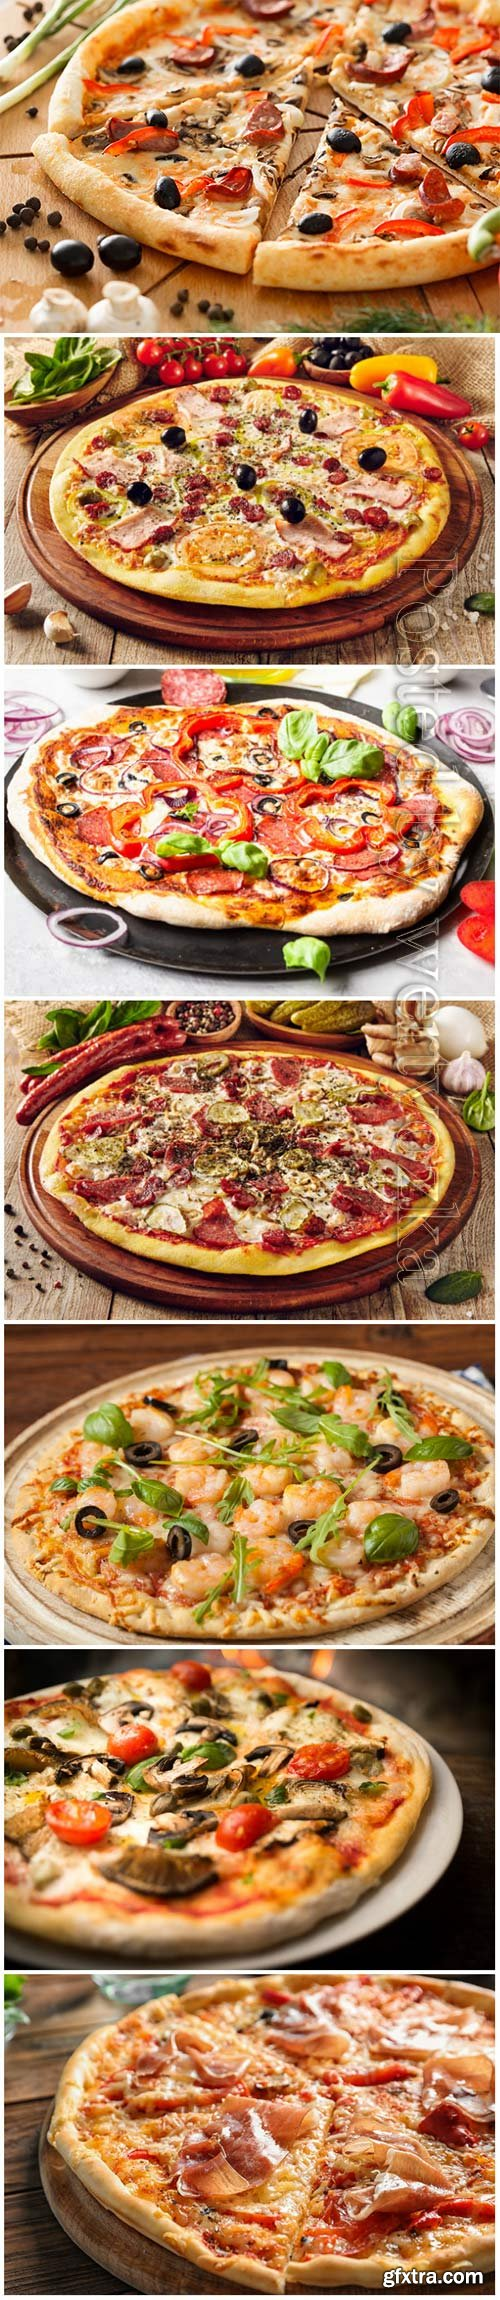 Delicious pizza with different products